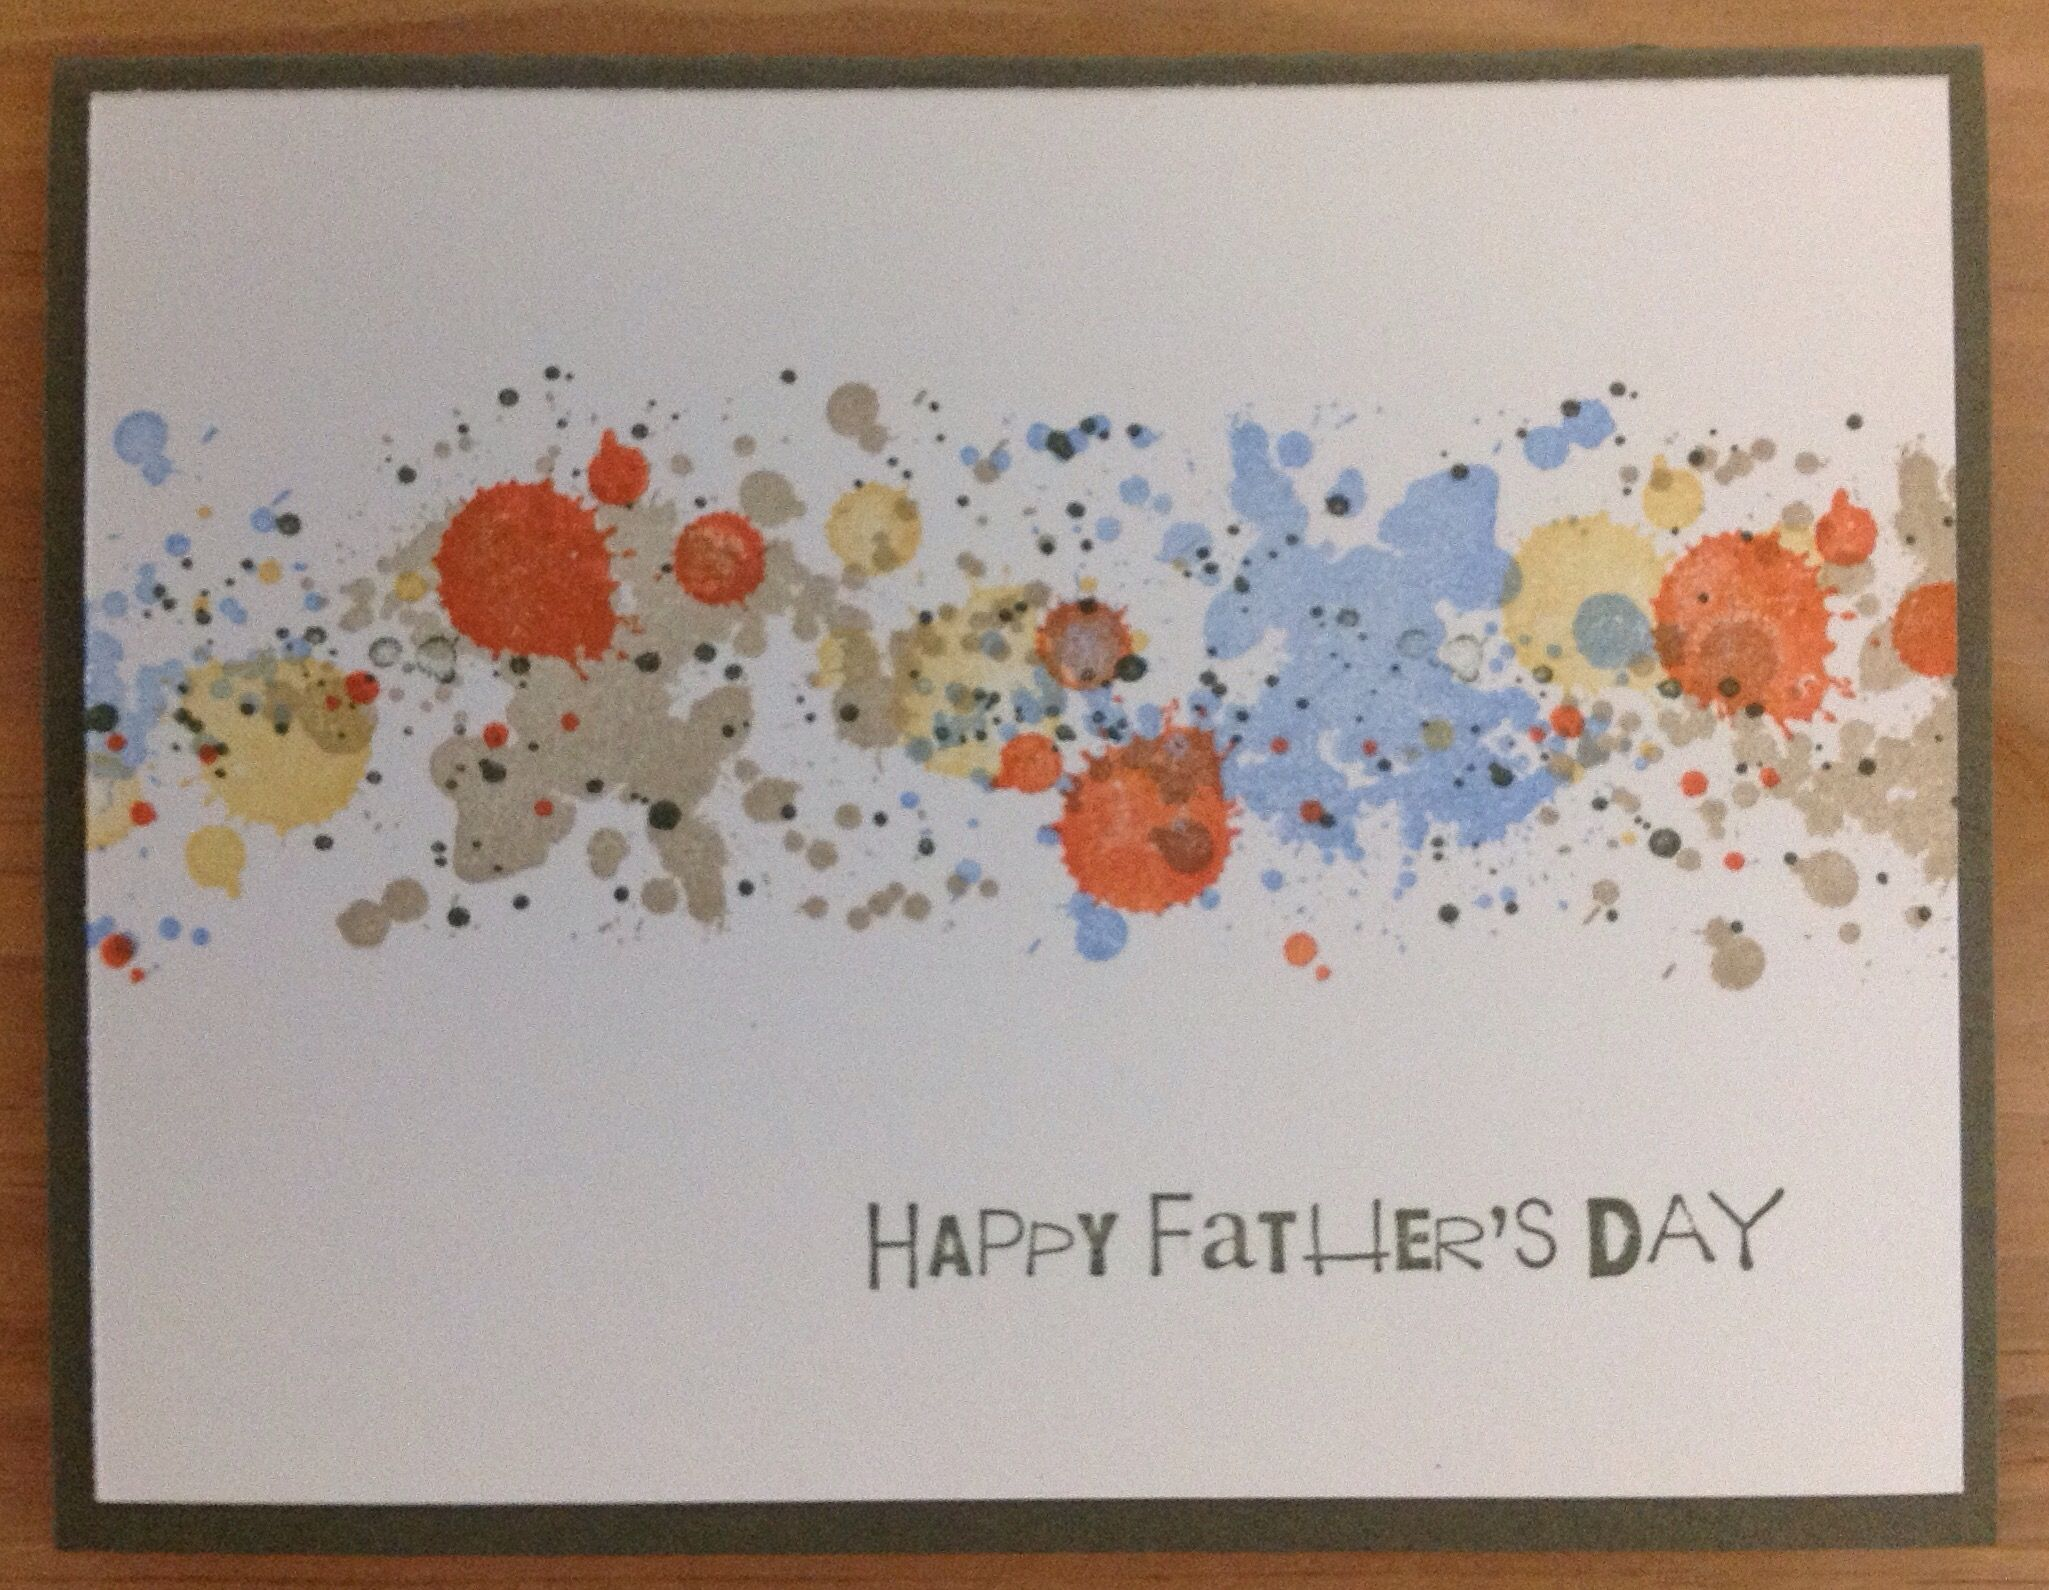 Fatherus day card paper craft pinterest craft